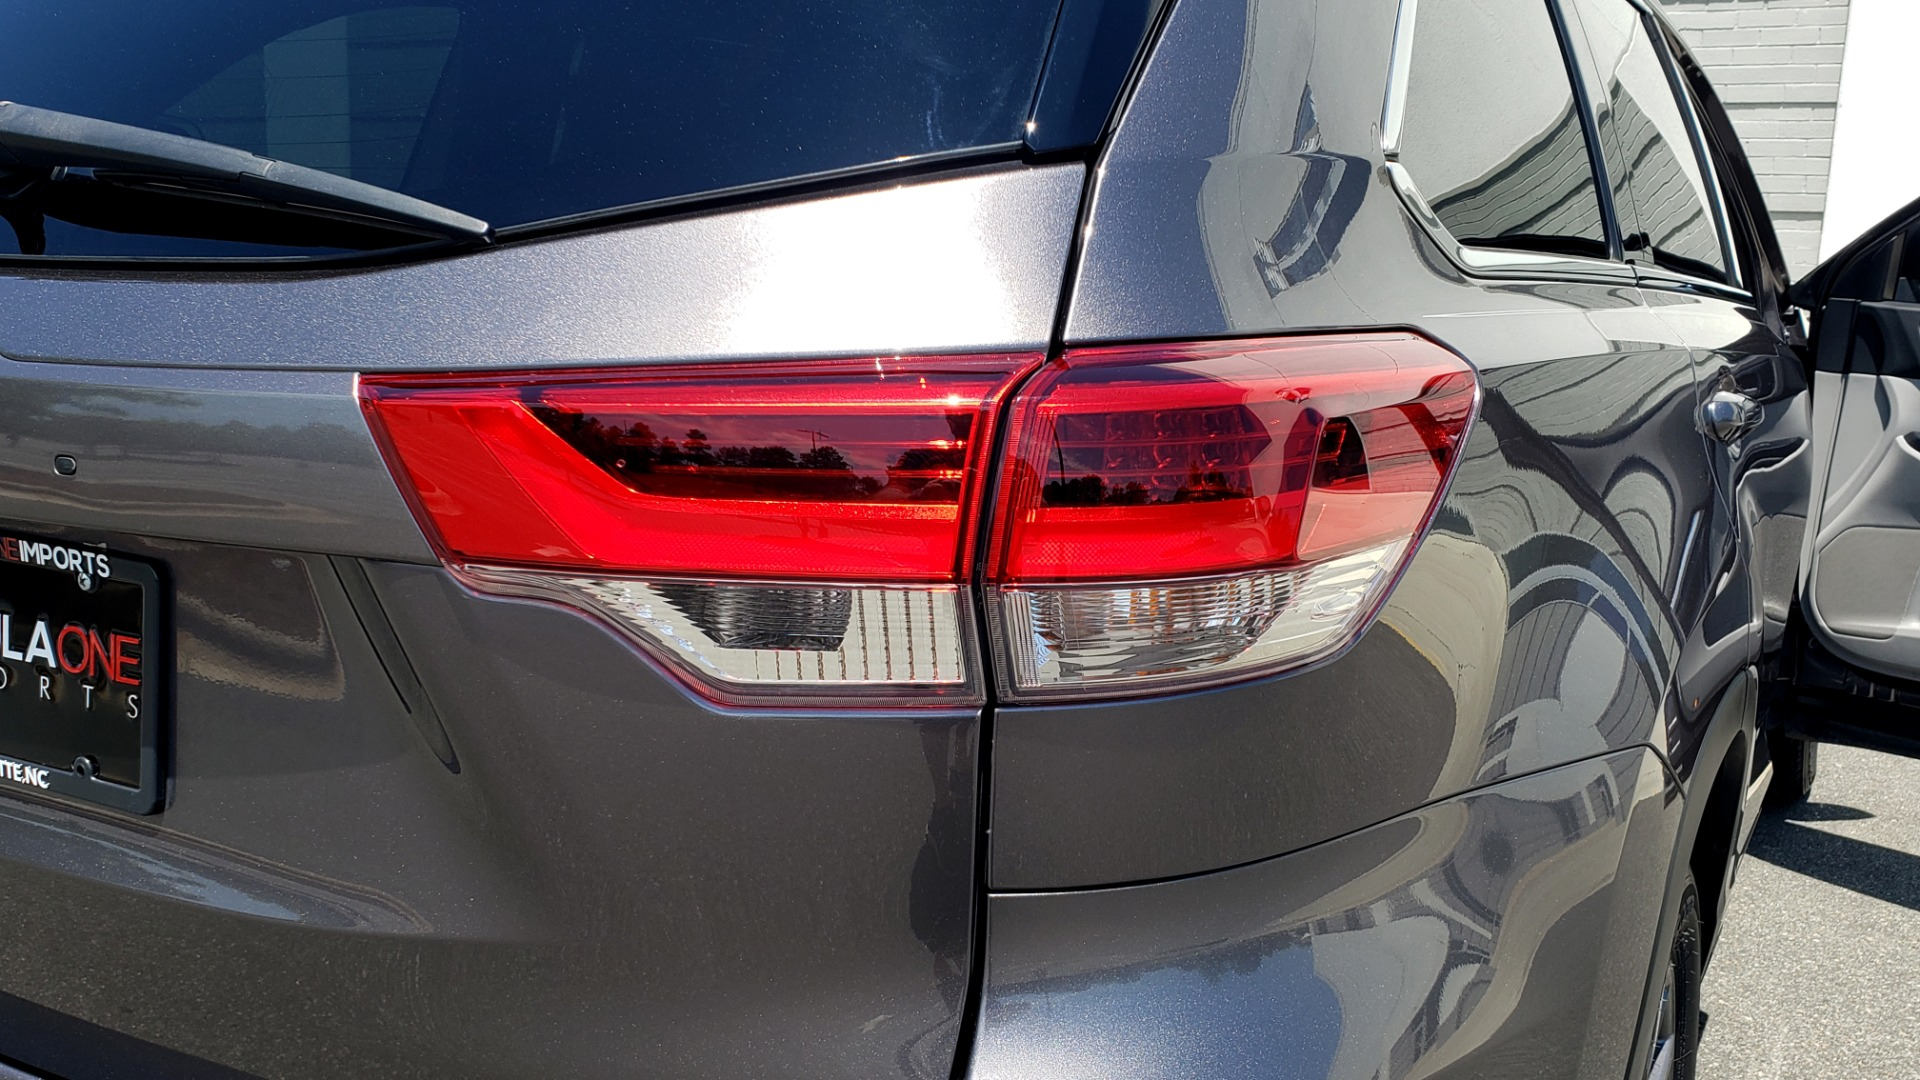 Used 2019 Toyota HIGHLANDER XLE / 3.5L V6 / AWD / LEATHER / 8-SPD AUTO / 1-OWNER for sale $37,500 at Formula Imports in Charlotte NC 28227 29